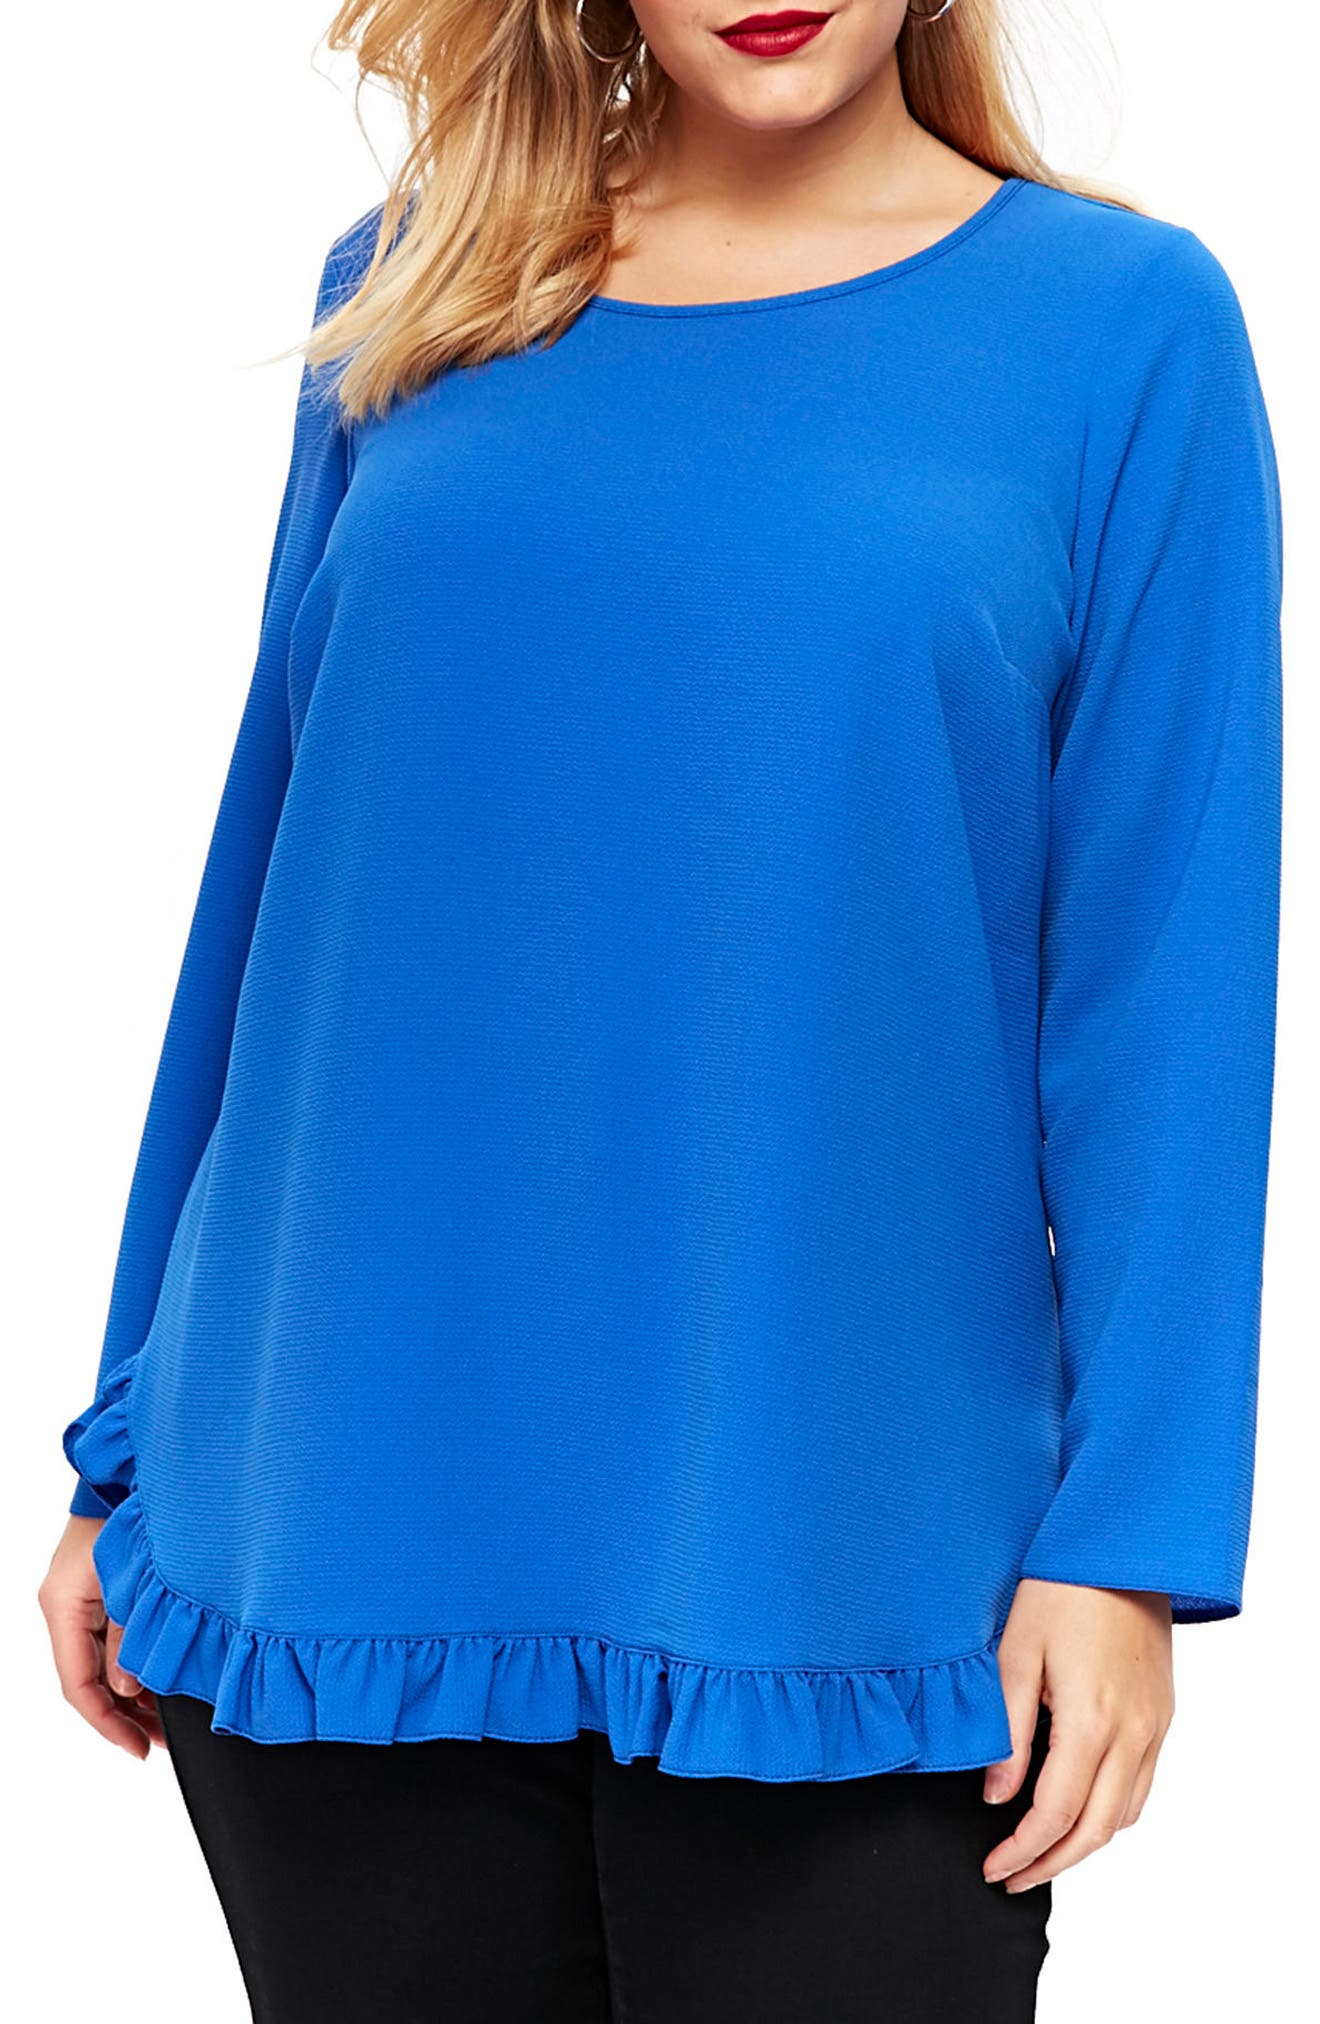 Evans Ruffle Hem Top (Plus Size)